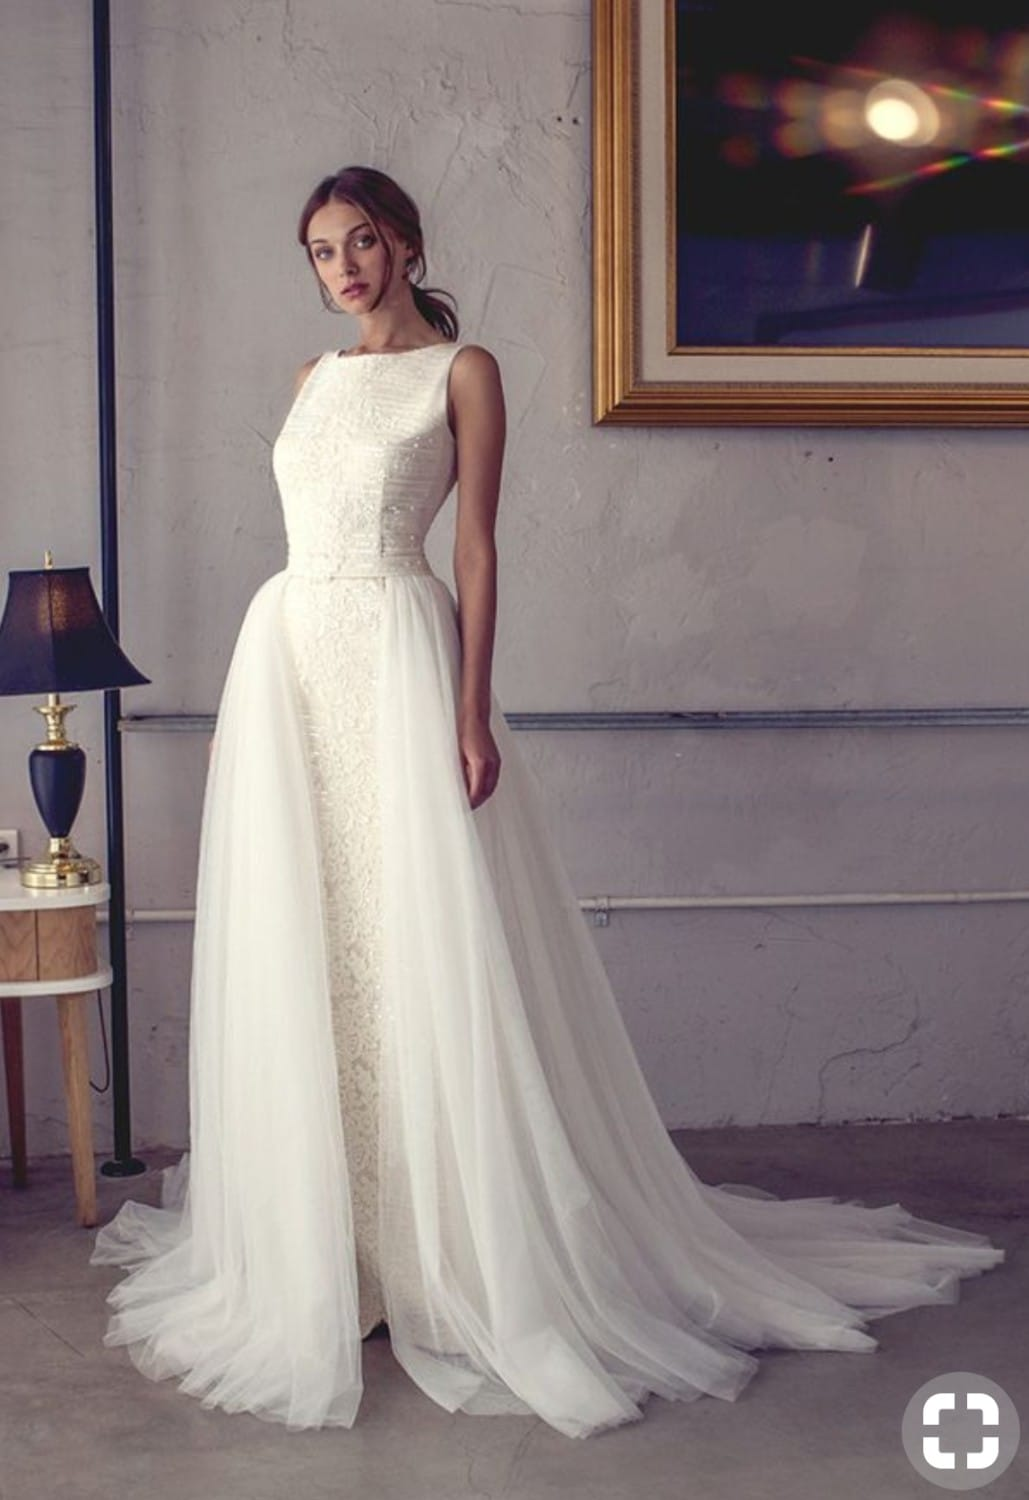 Dual look wedding dress by Riki Dalal - Sell My Wedding Dress Online ...